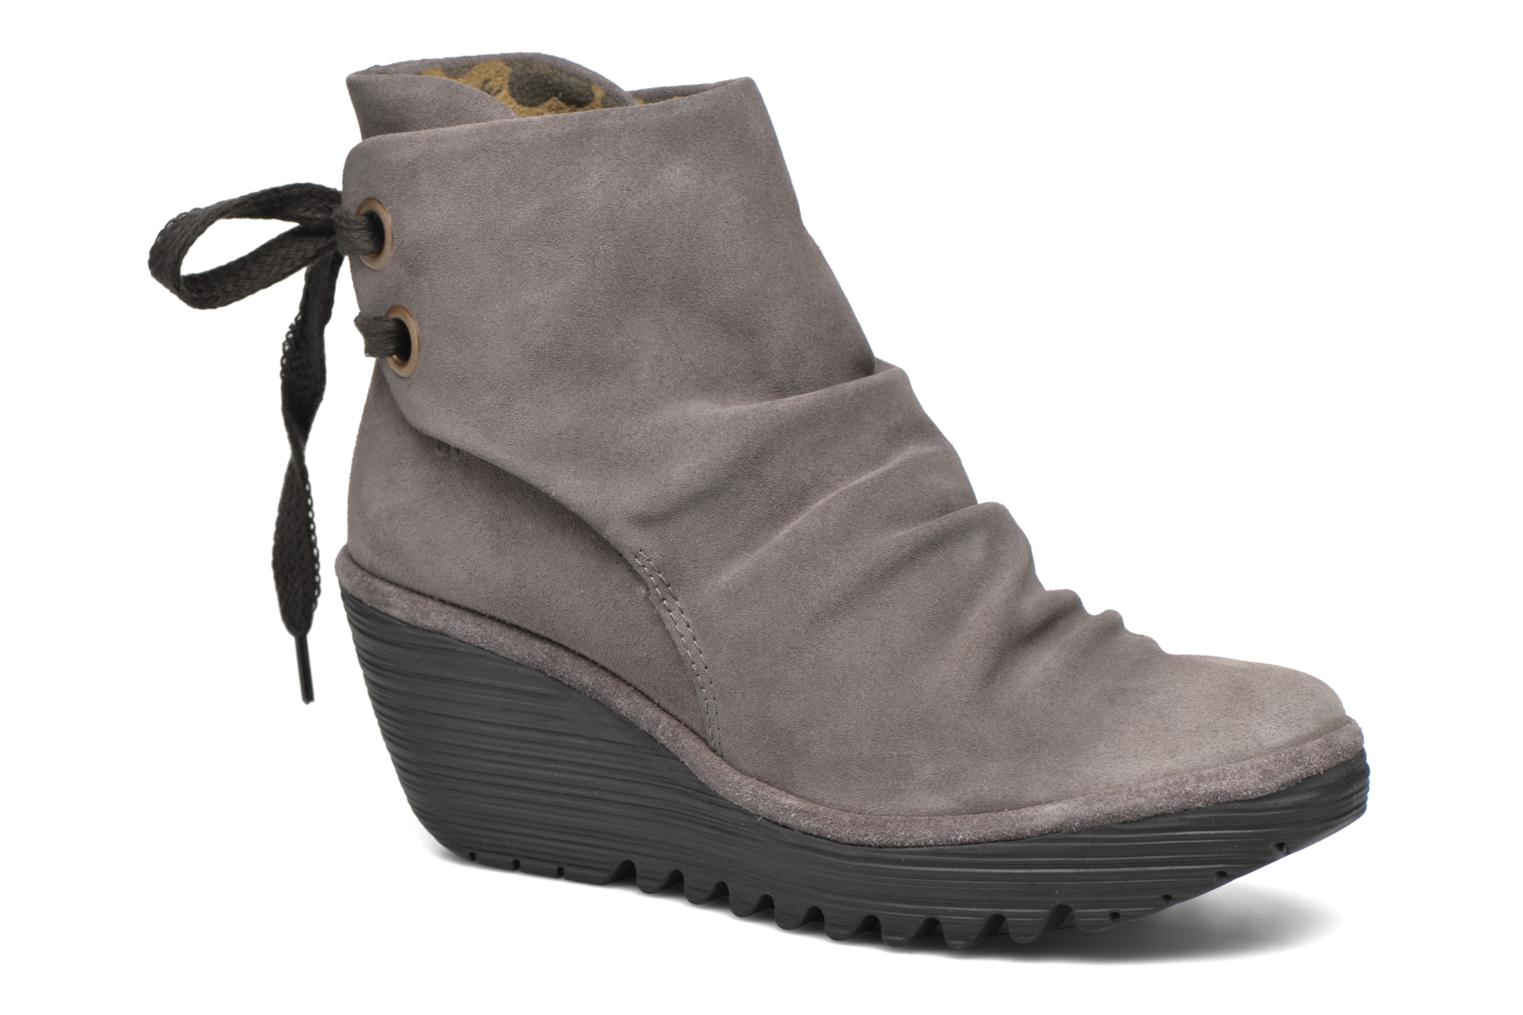 Marques Chaussure femme Fly London femme Yama Oil Suede Ash